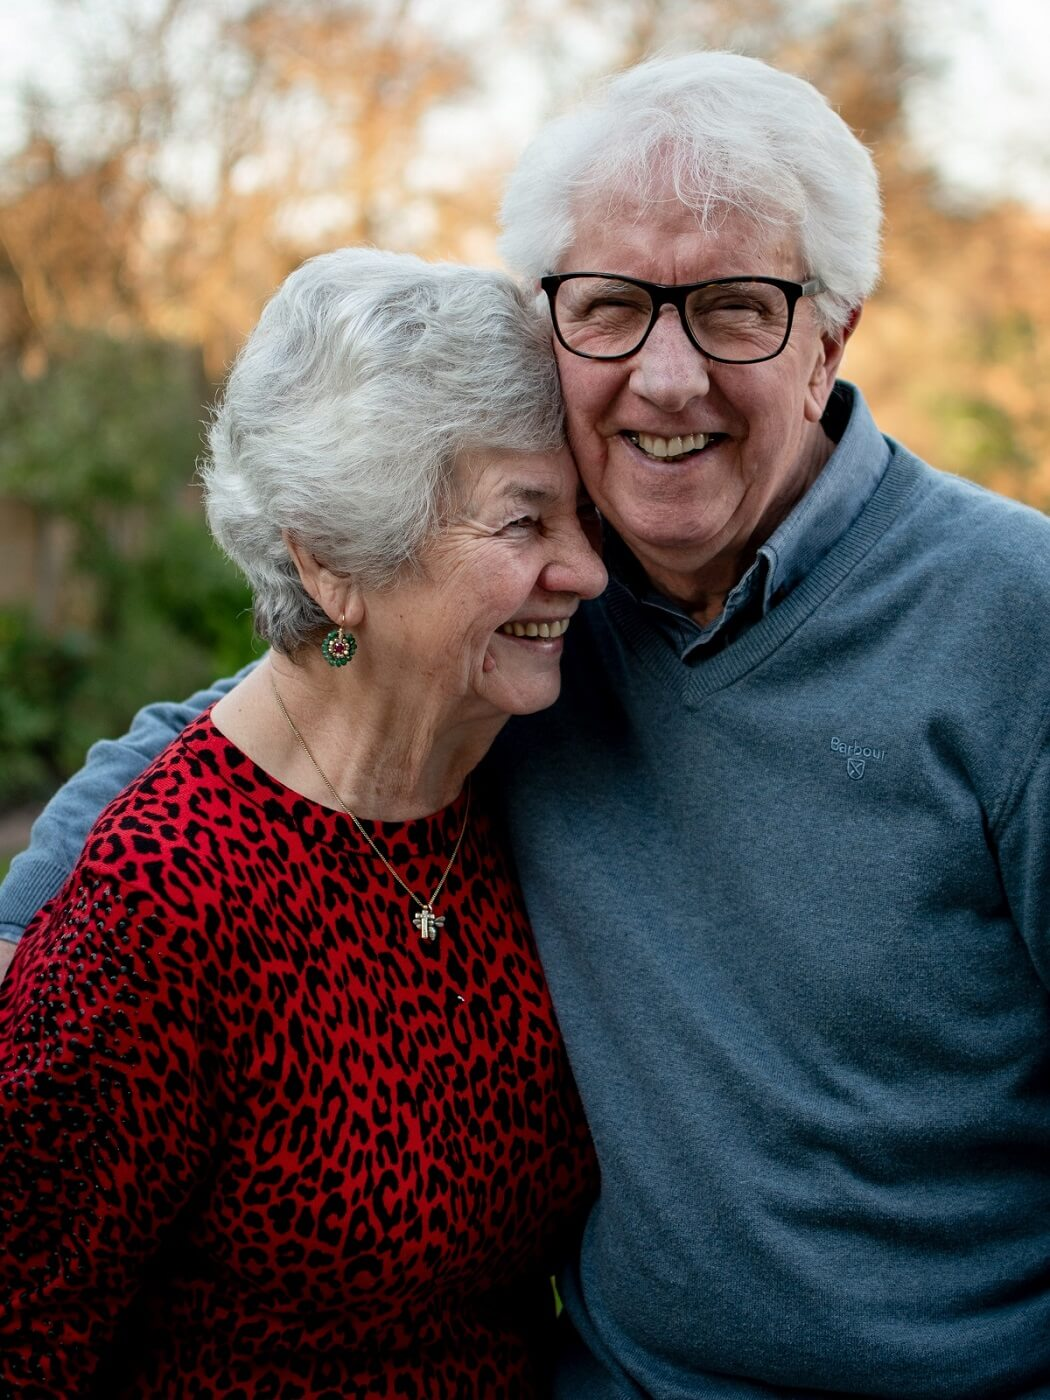 couple smiling after having an aurgment